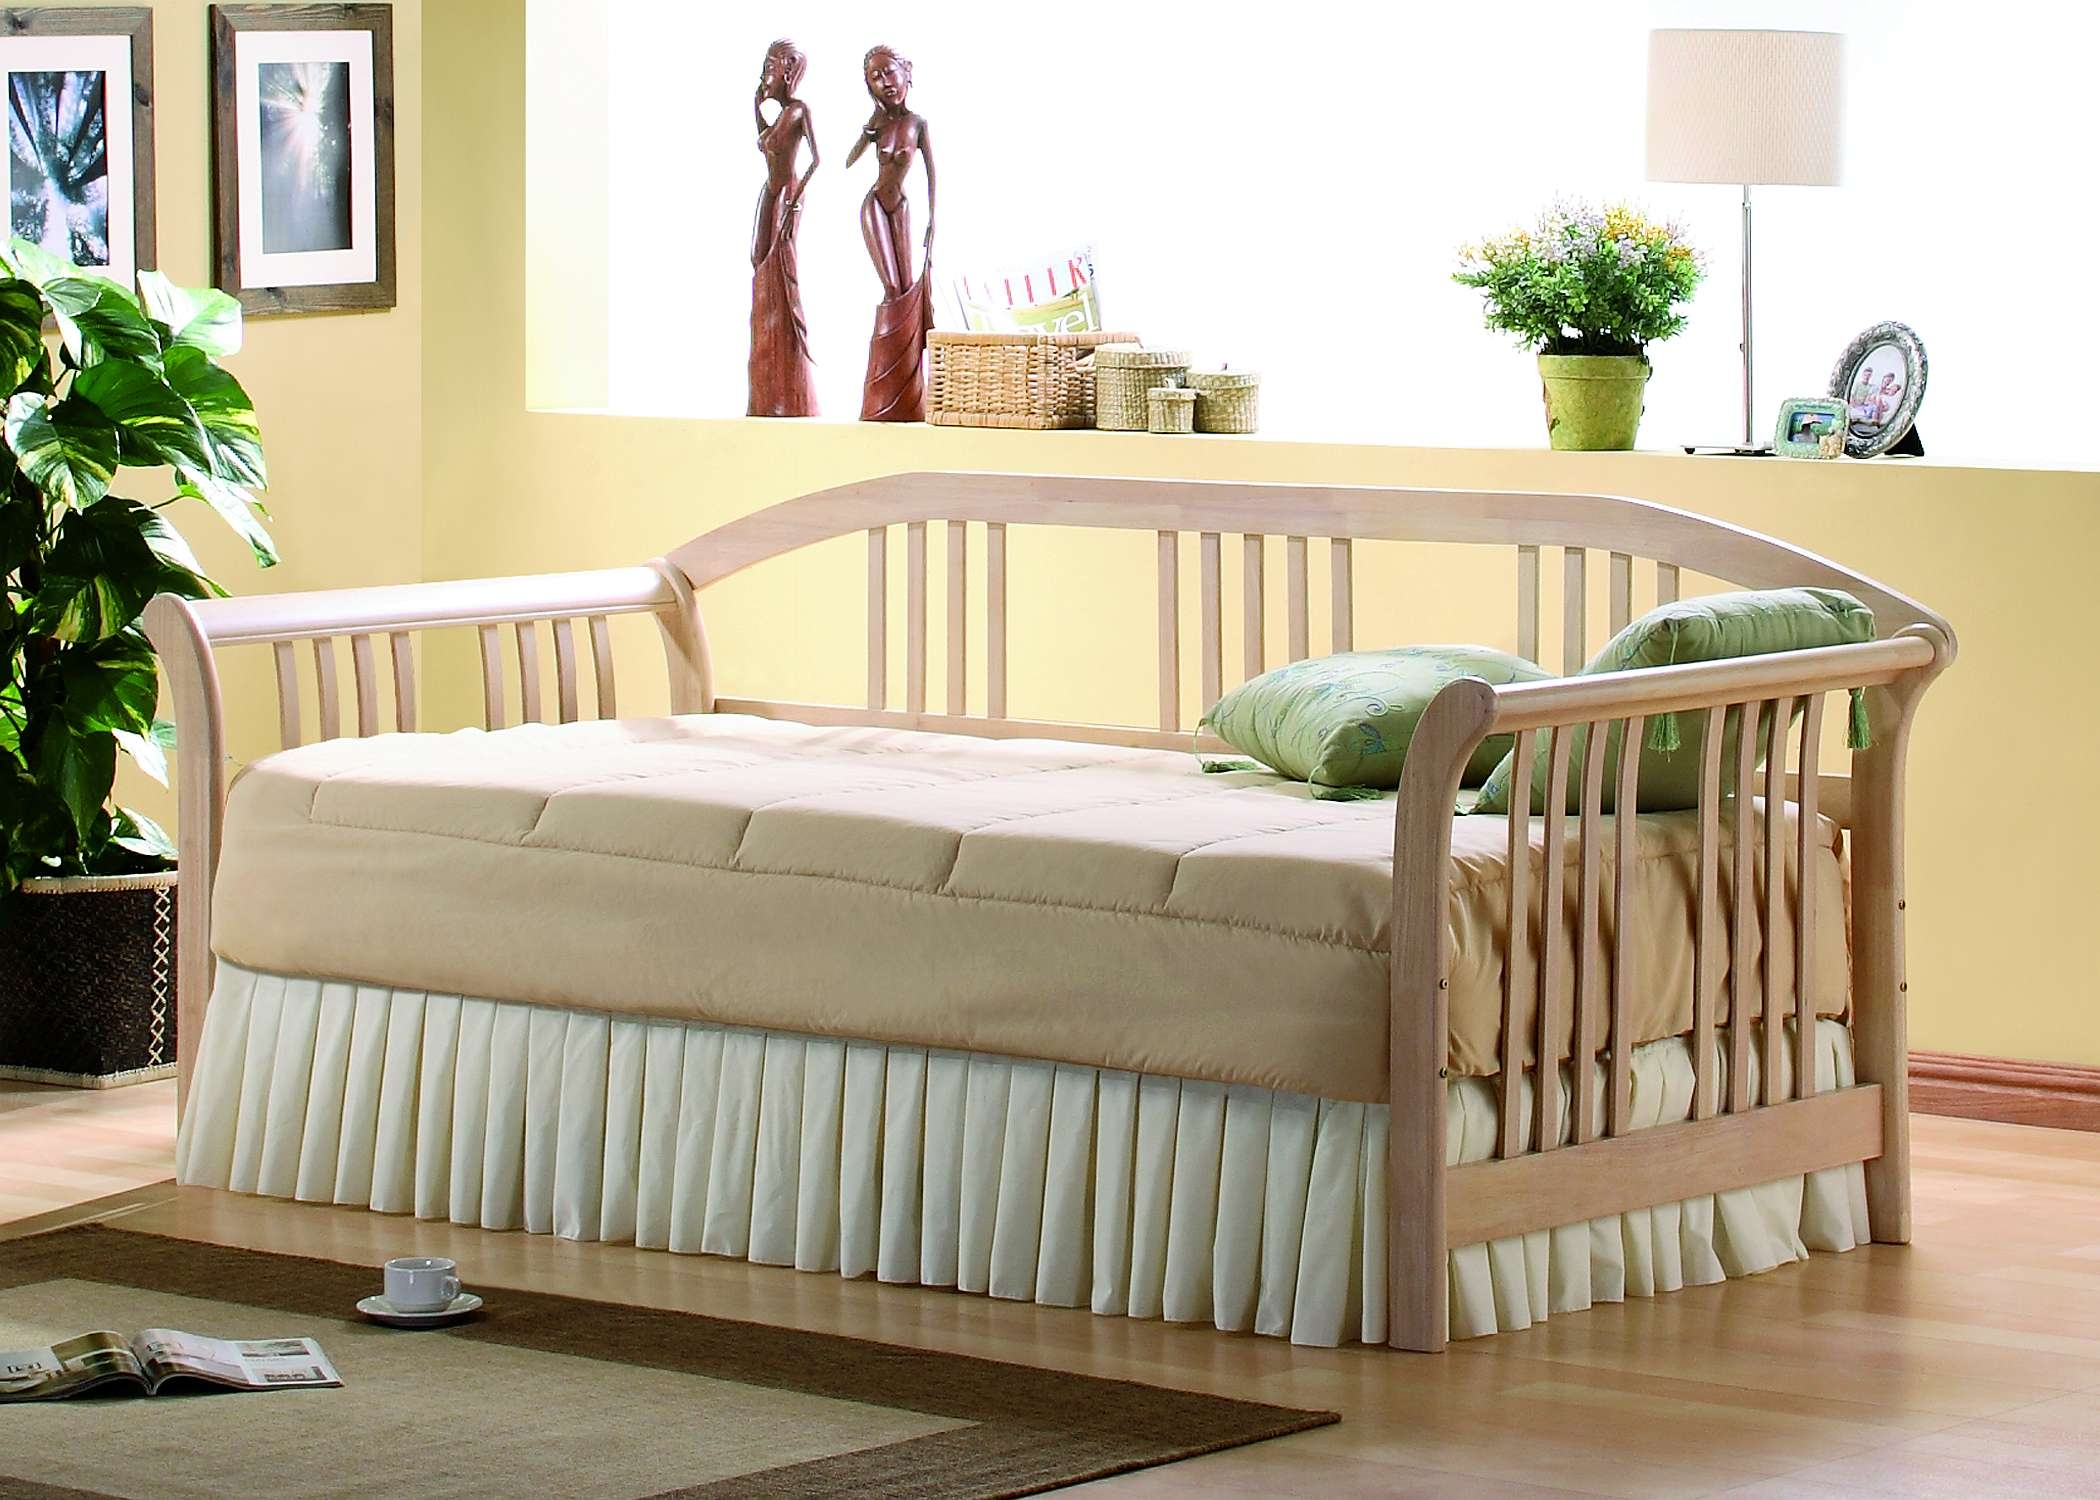 Trundle Beds for Sale | Full Size Daybed with Trundle | Cheap Daybeds